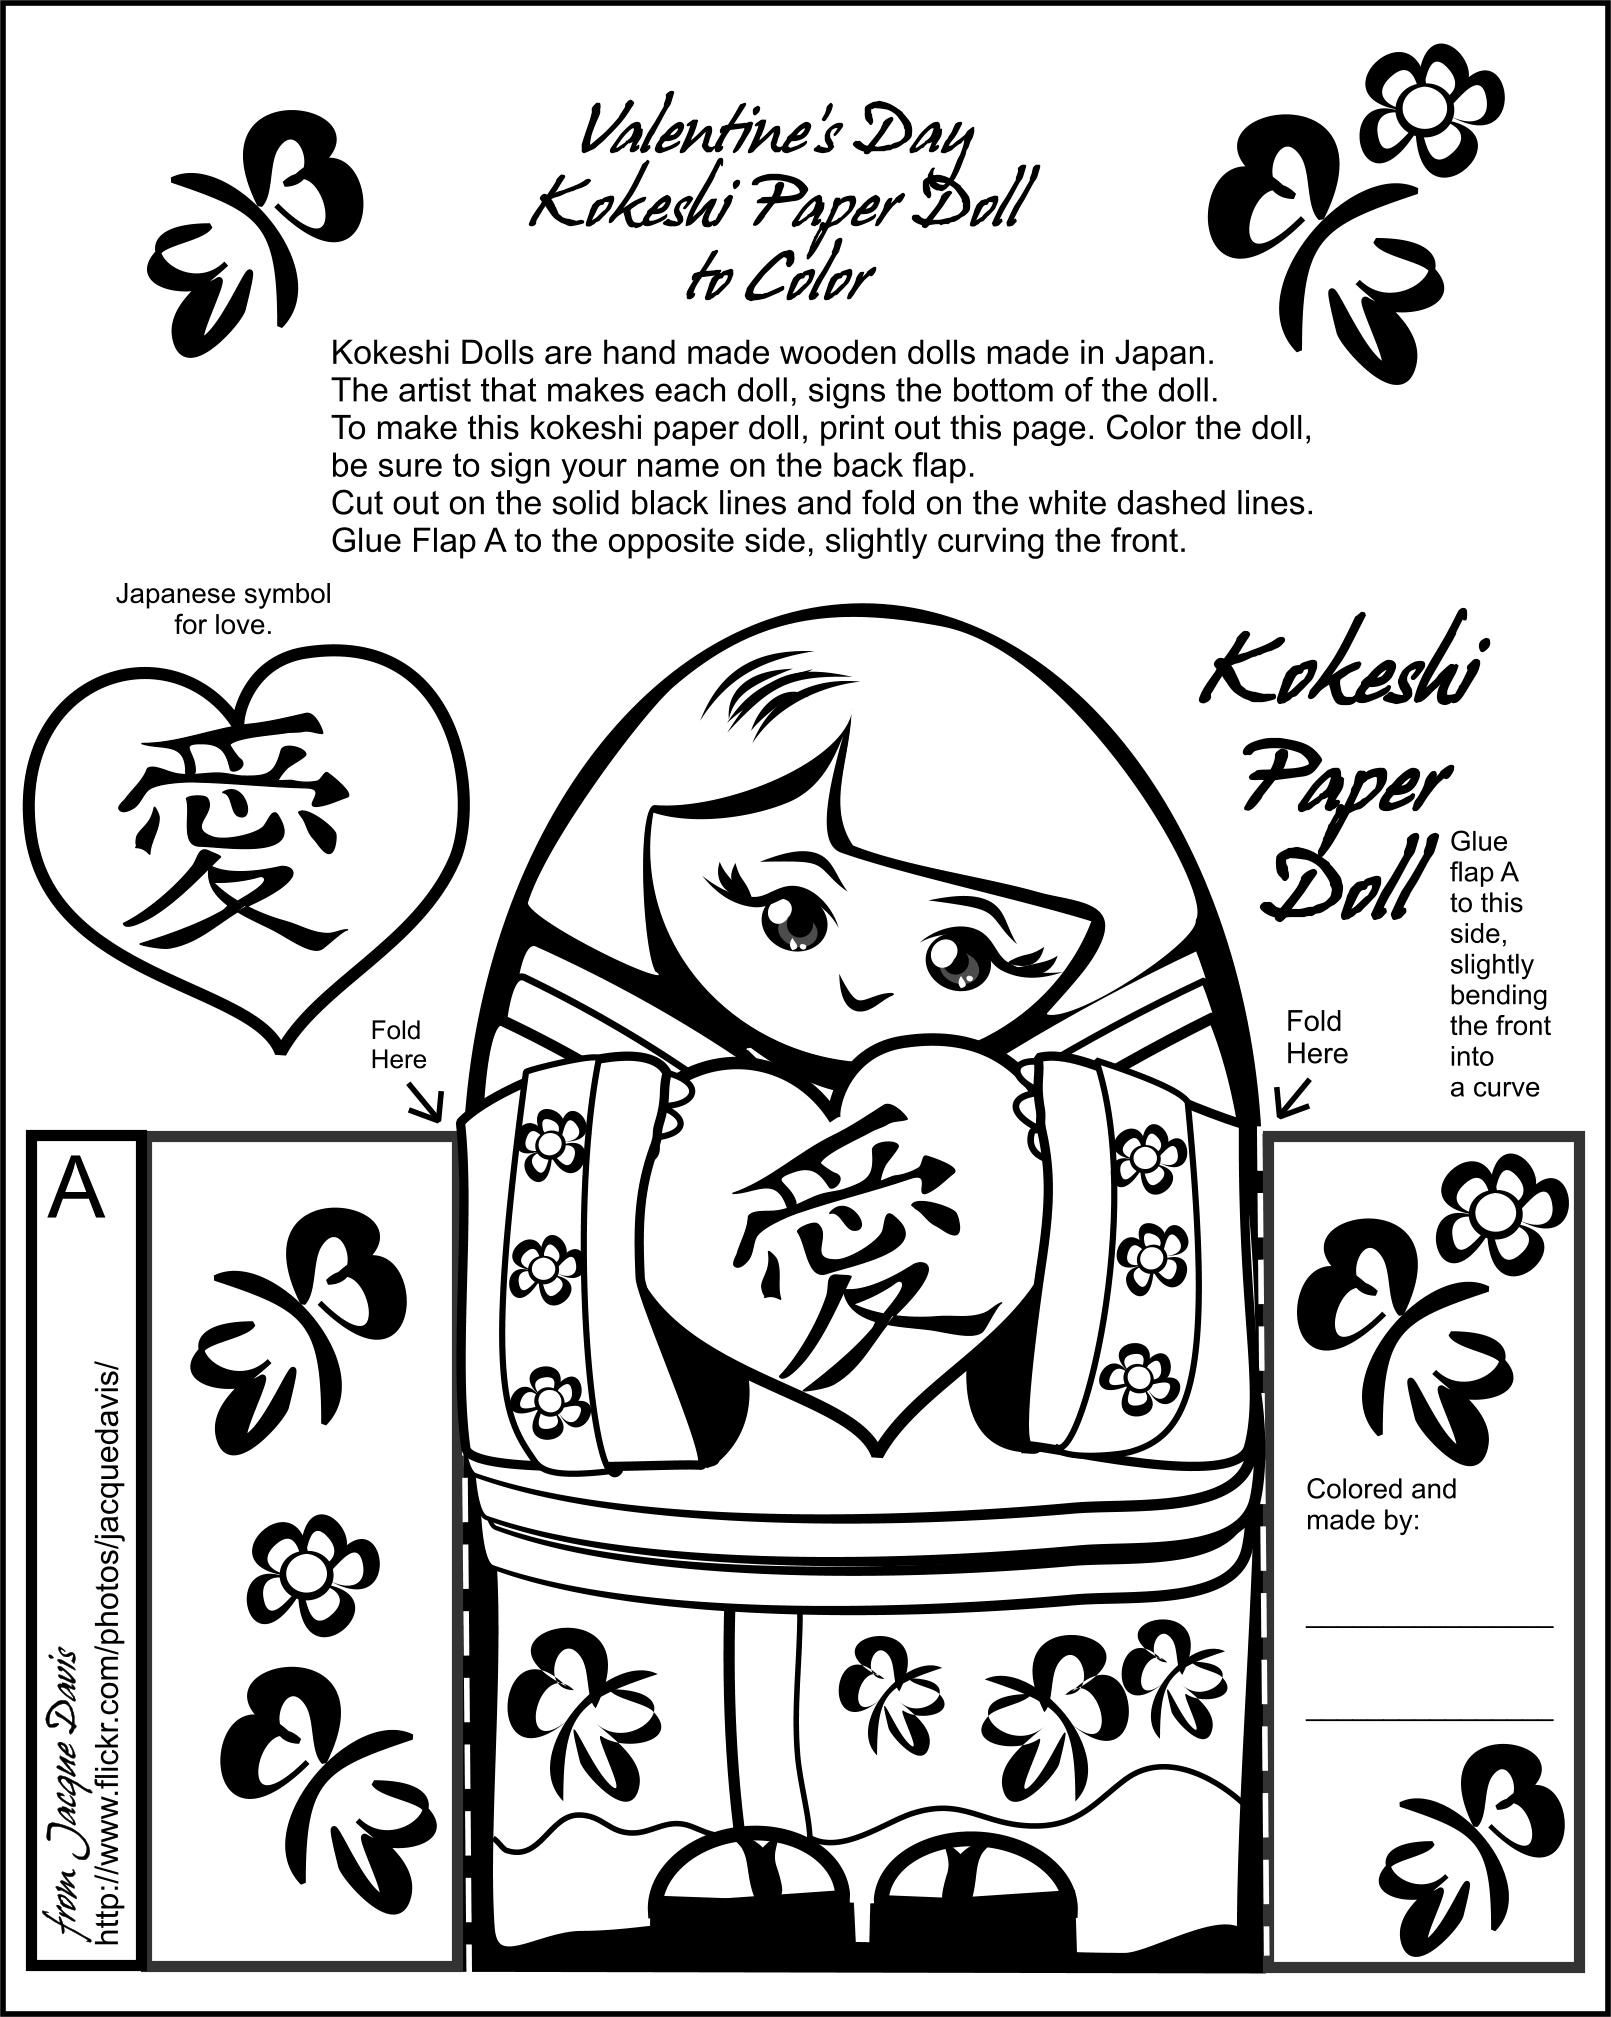 Valentine S Day Kokeshi Paper Doll To Color Free